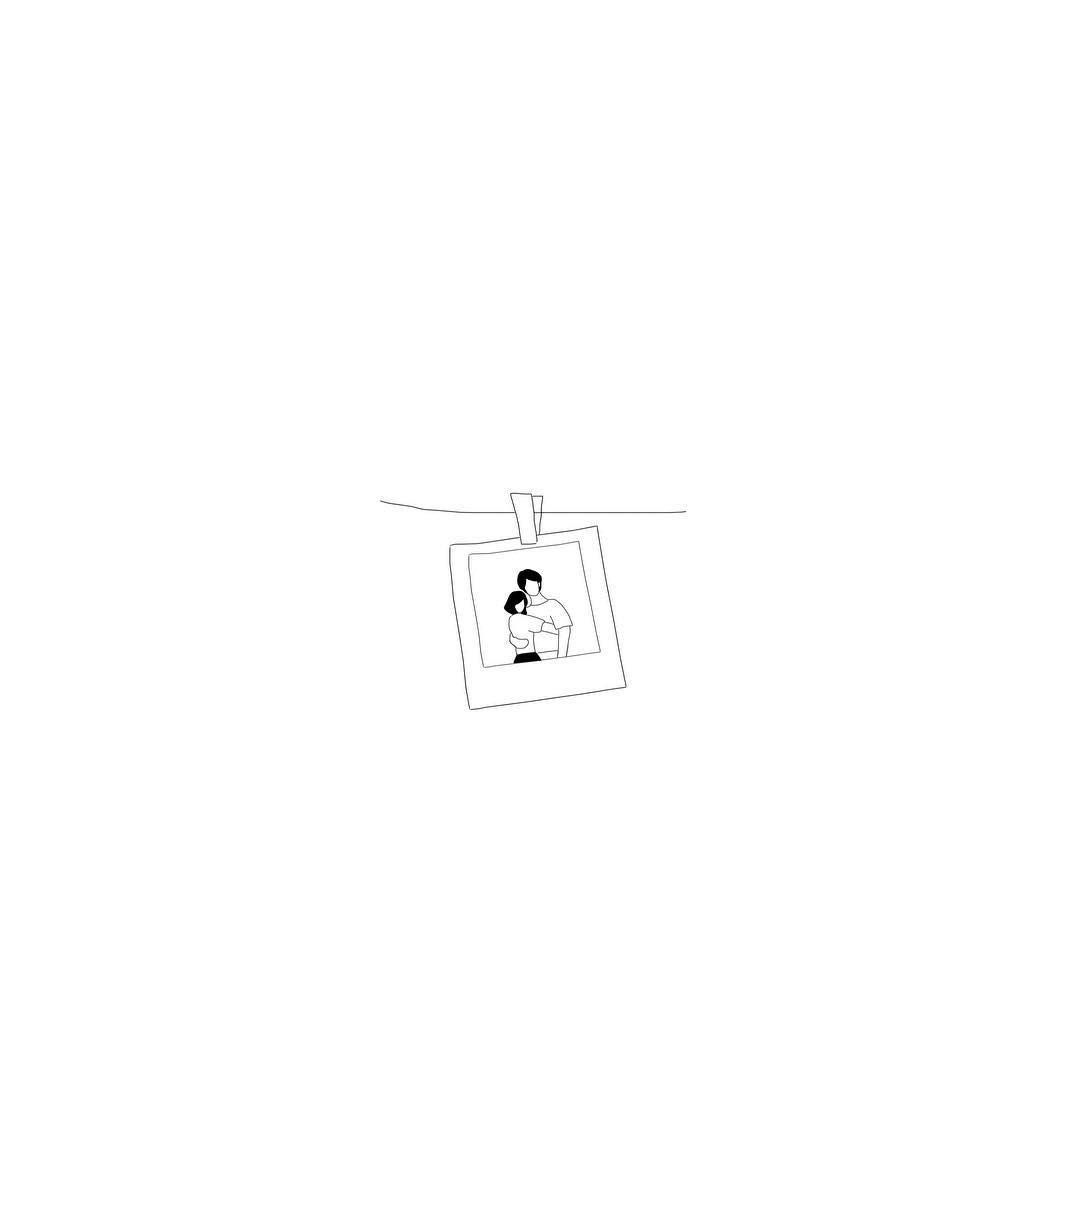 Ex Husband With Images Minimalist Drawing